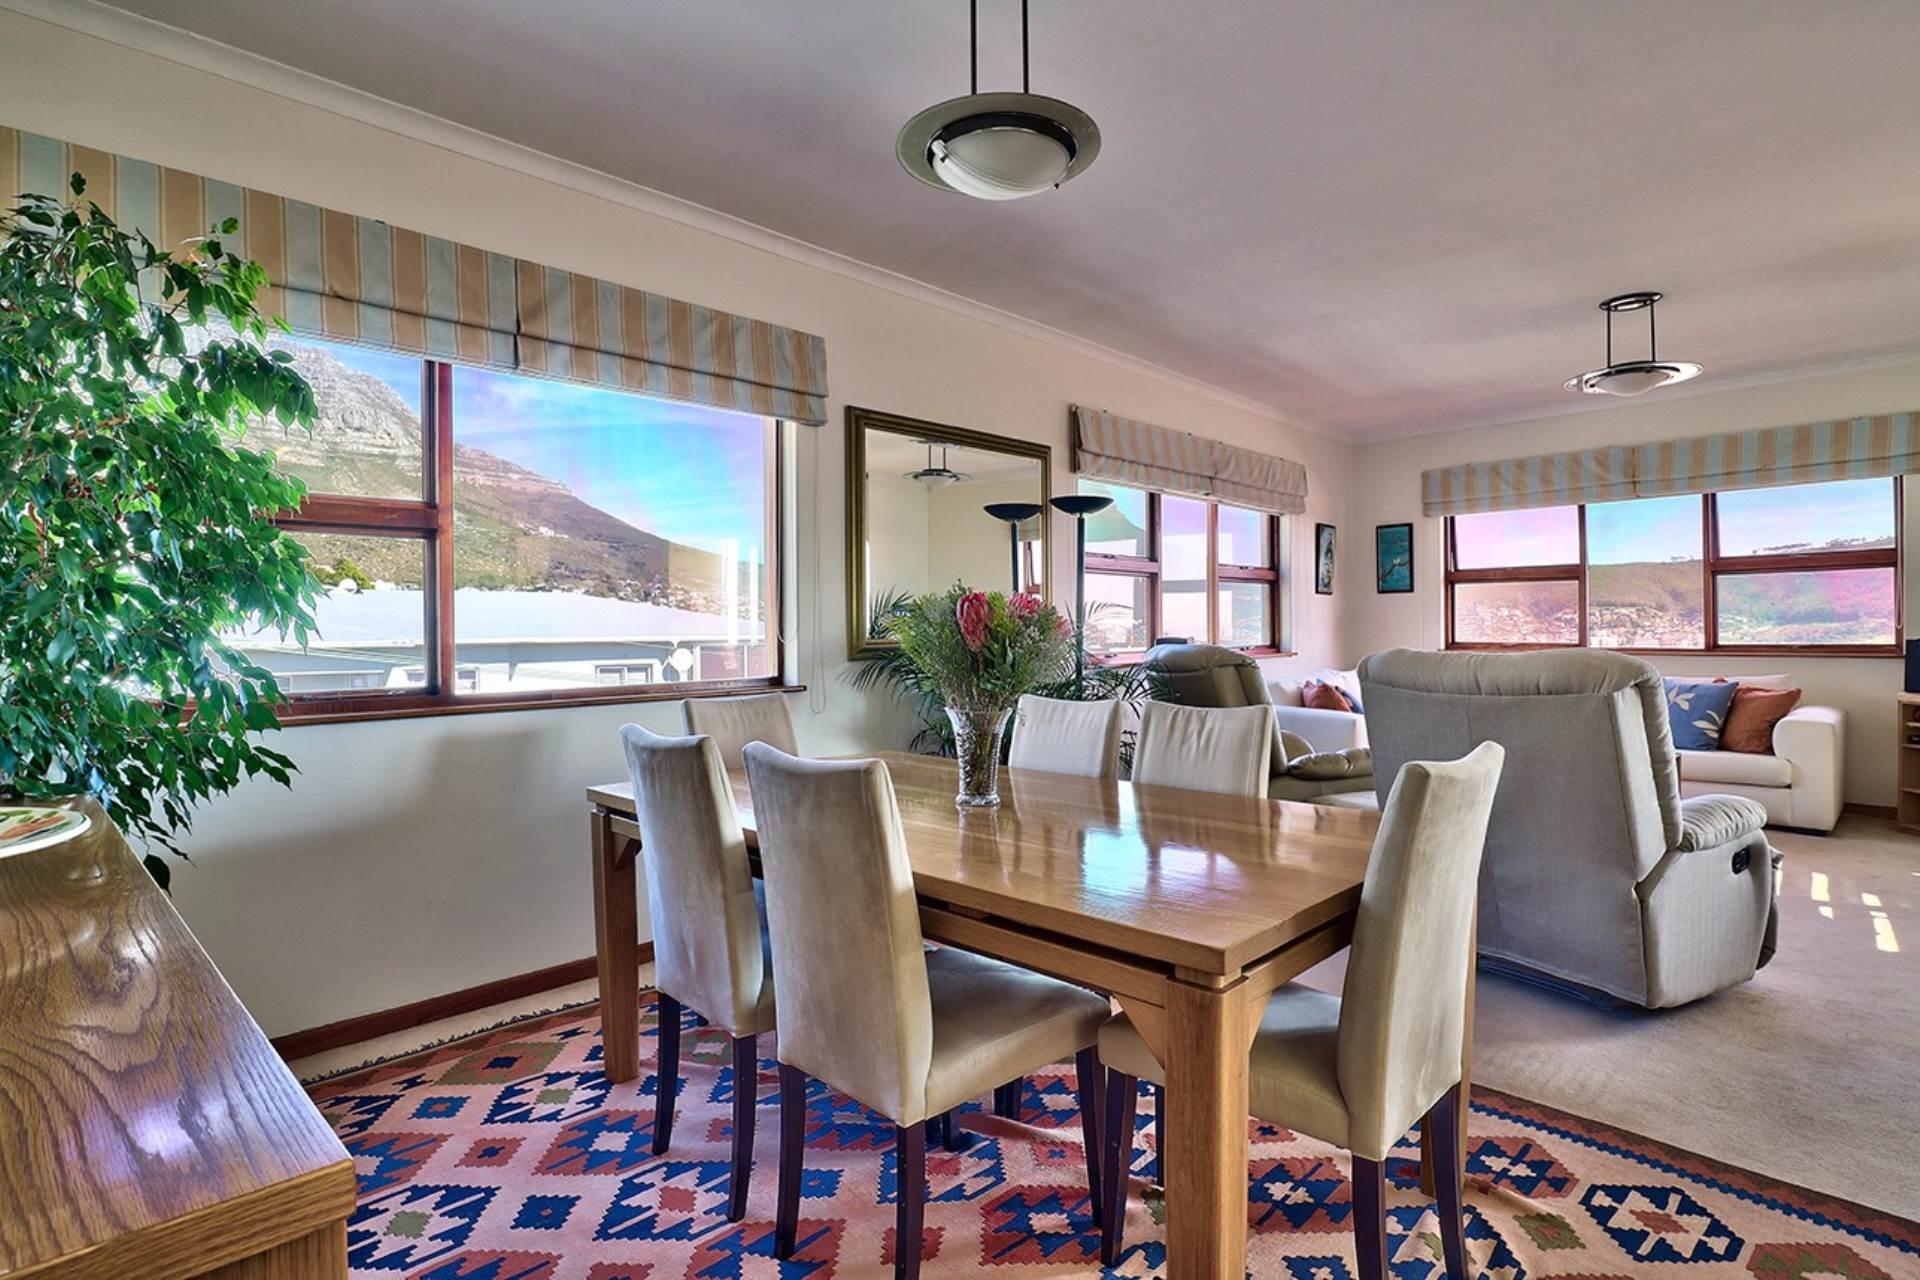 3 BedroomApartment For Sale In Vredehoek